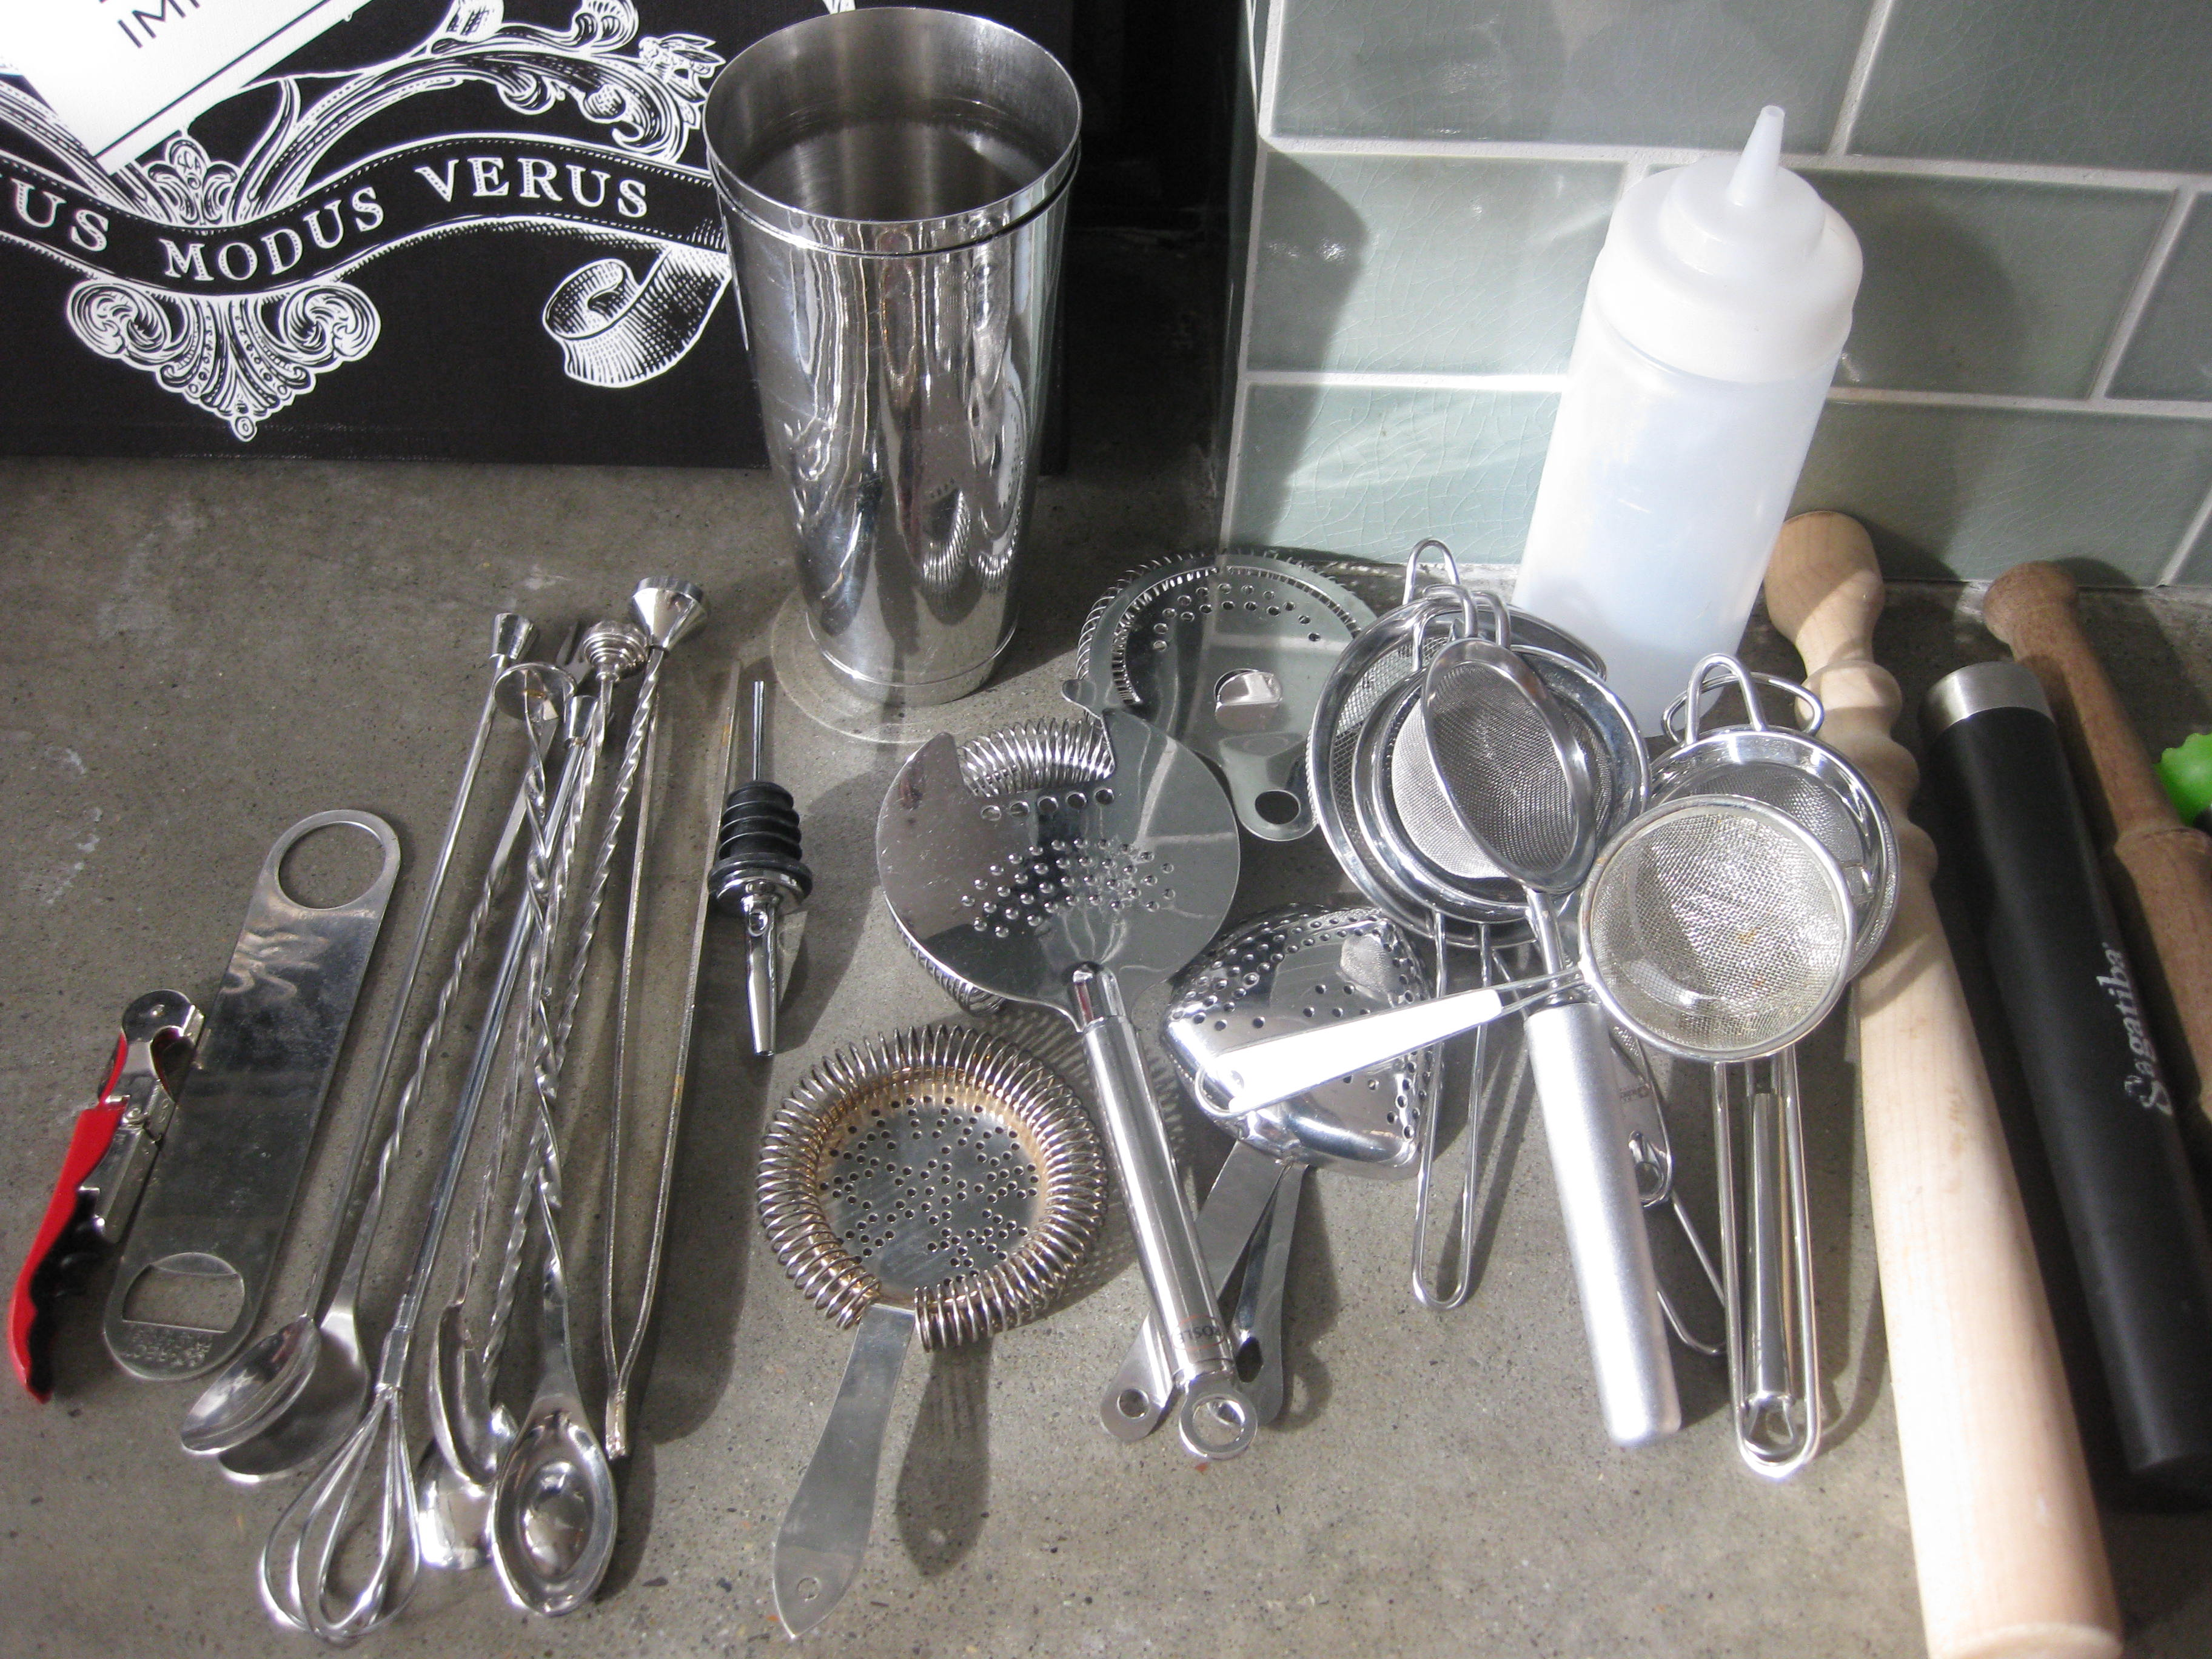 Bartender Josh Harris' collection of strainers, muddlers, and bar tools.